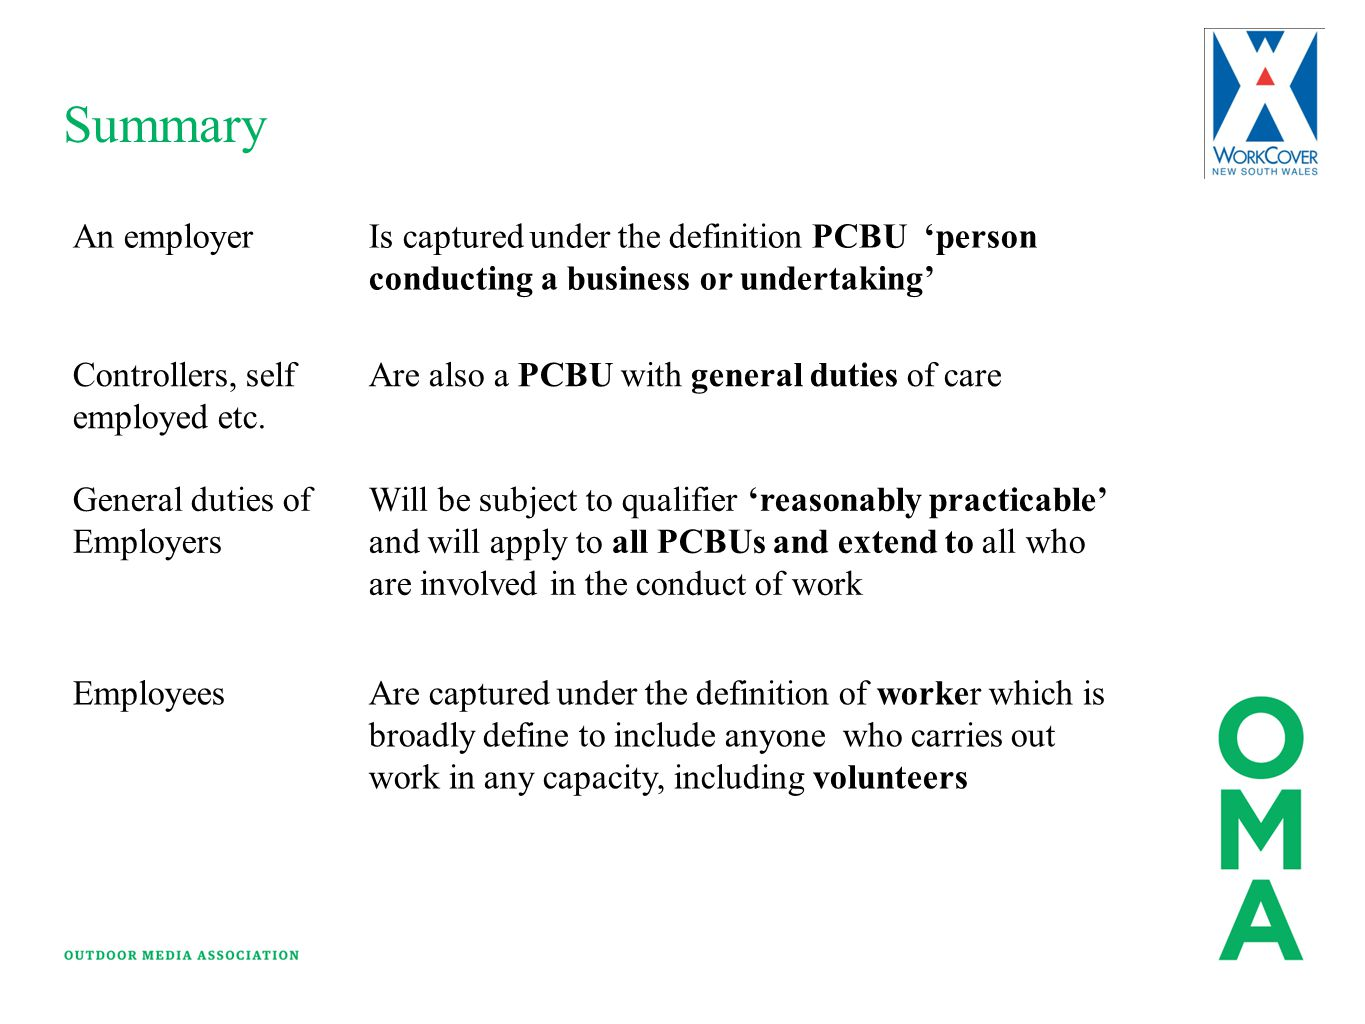 Summary An employer. Is captured under the definition PCBU 'person conducting a business or undertaking'